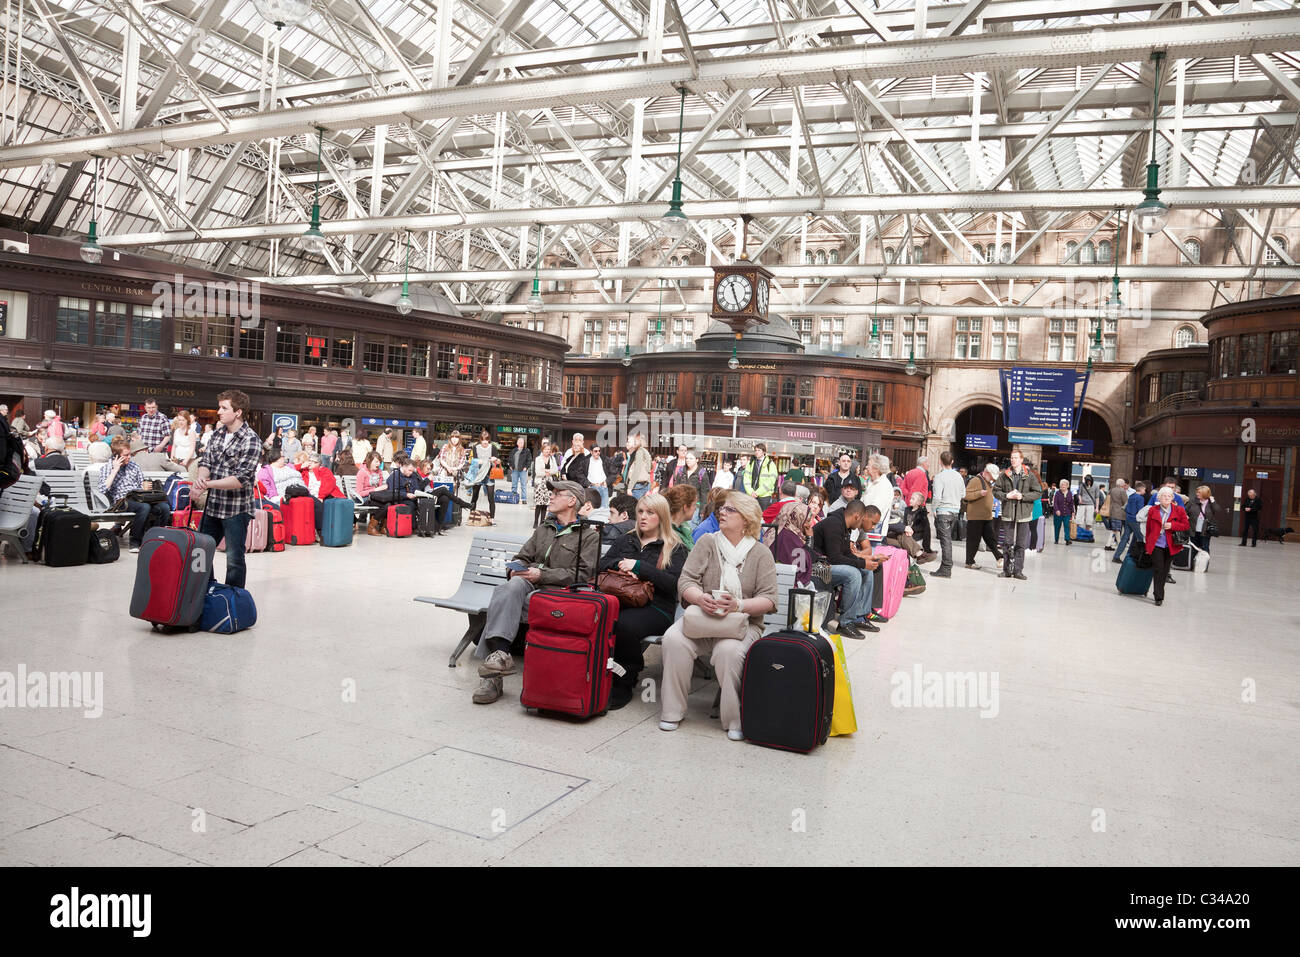 Passengers waiting for trains in the concourse at Glasgow Central Station. - Stock Image